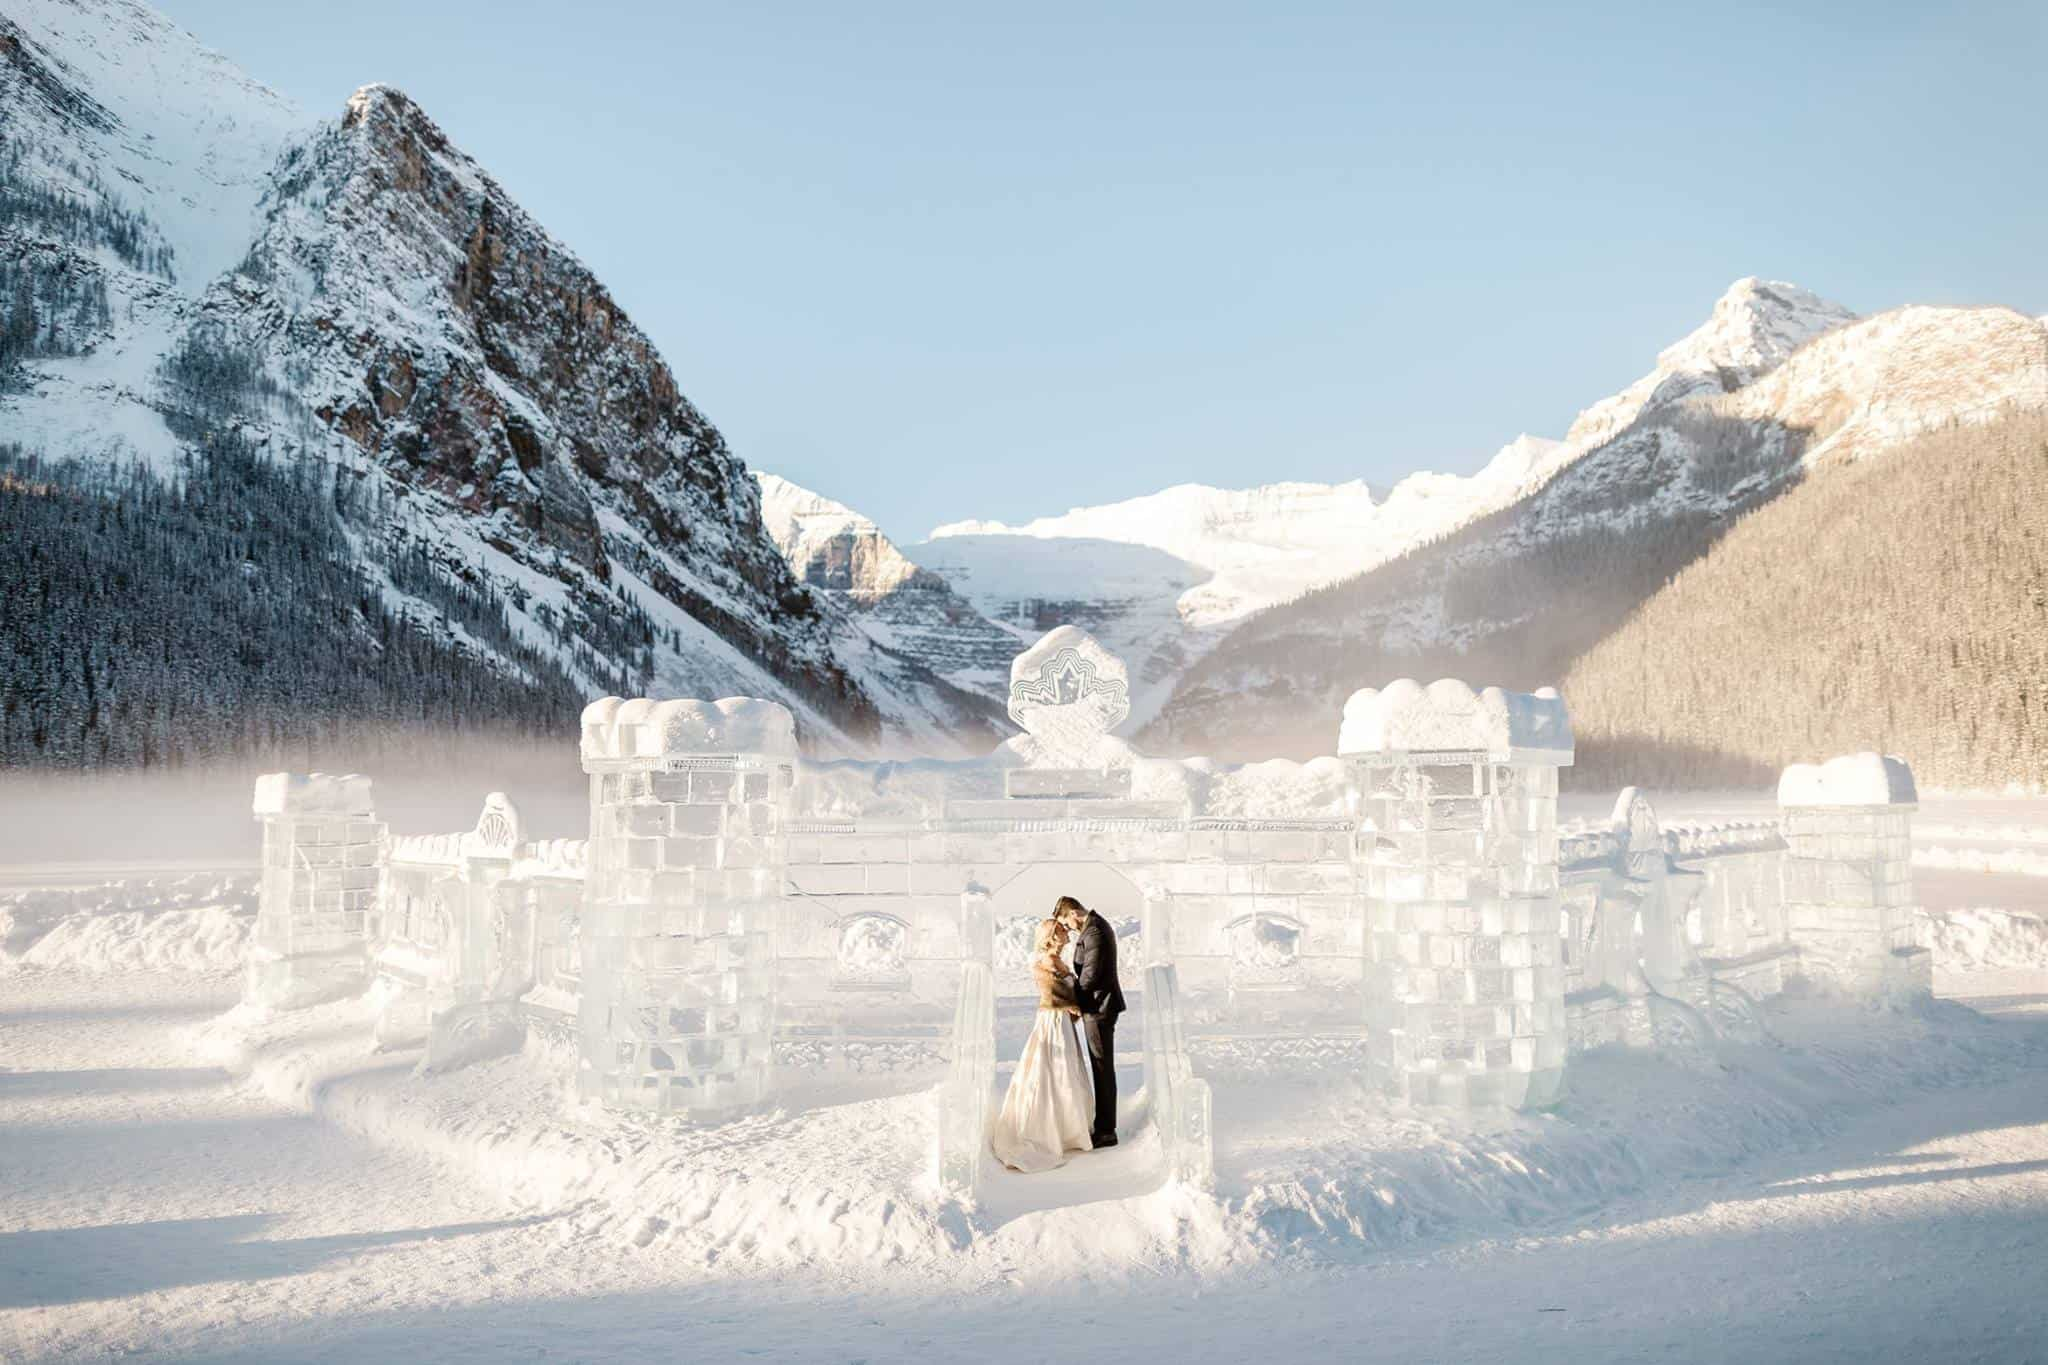 A wedding couple standing in front of a castle made of ice